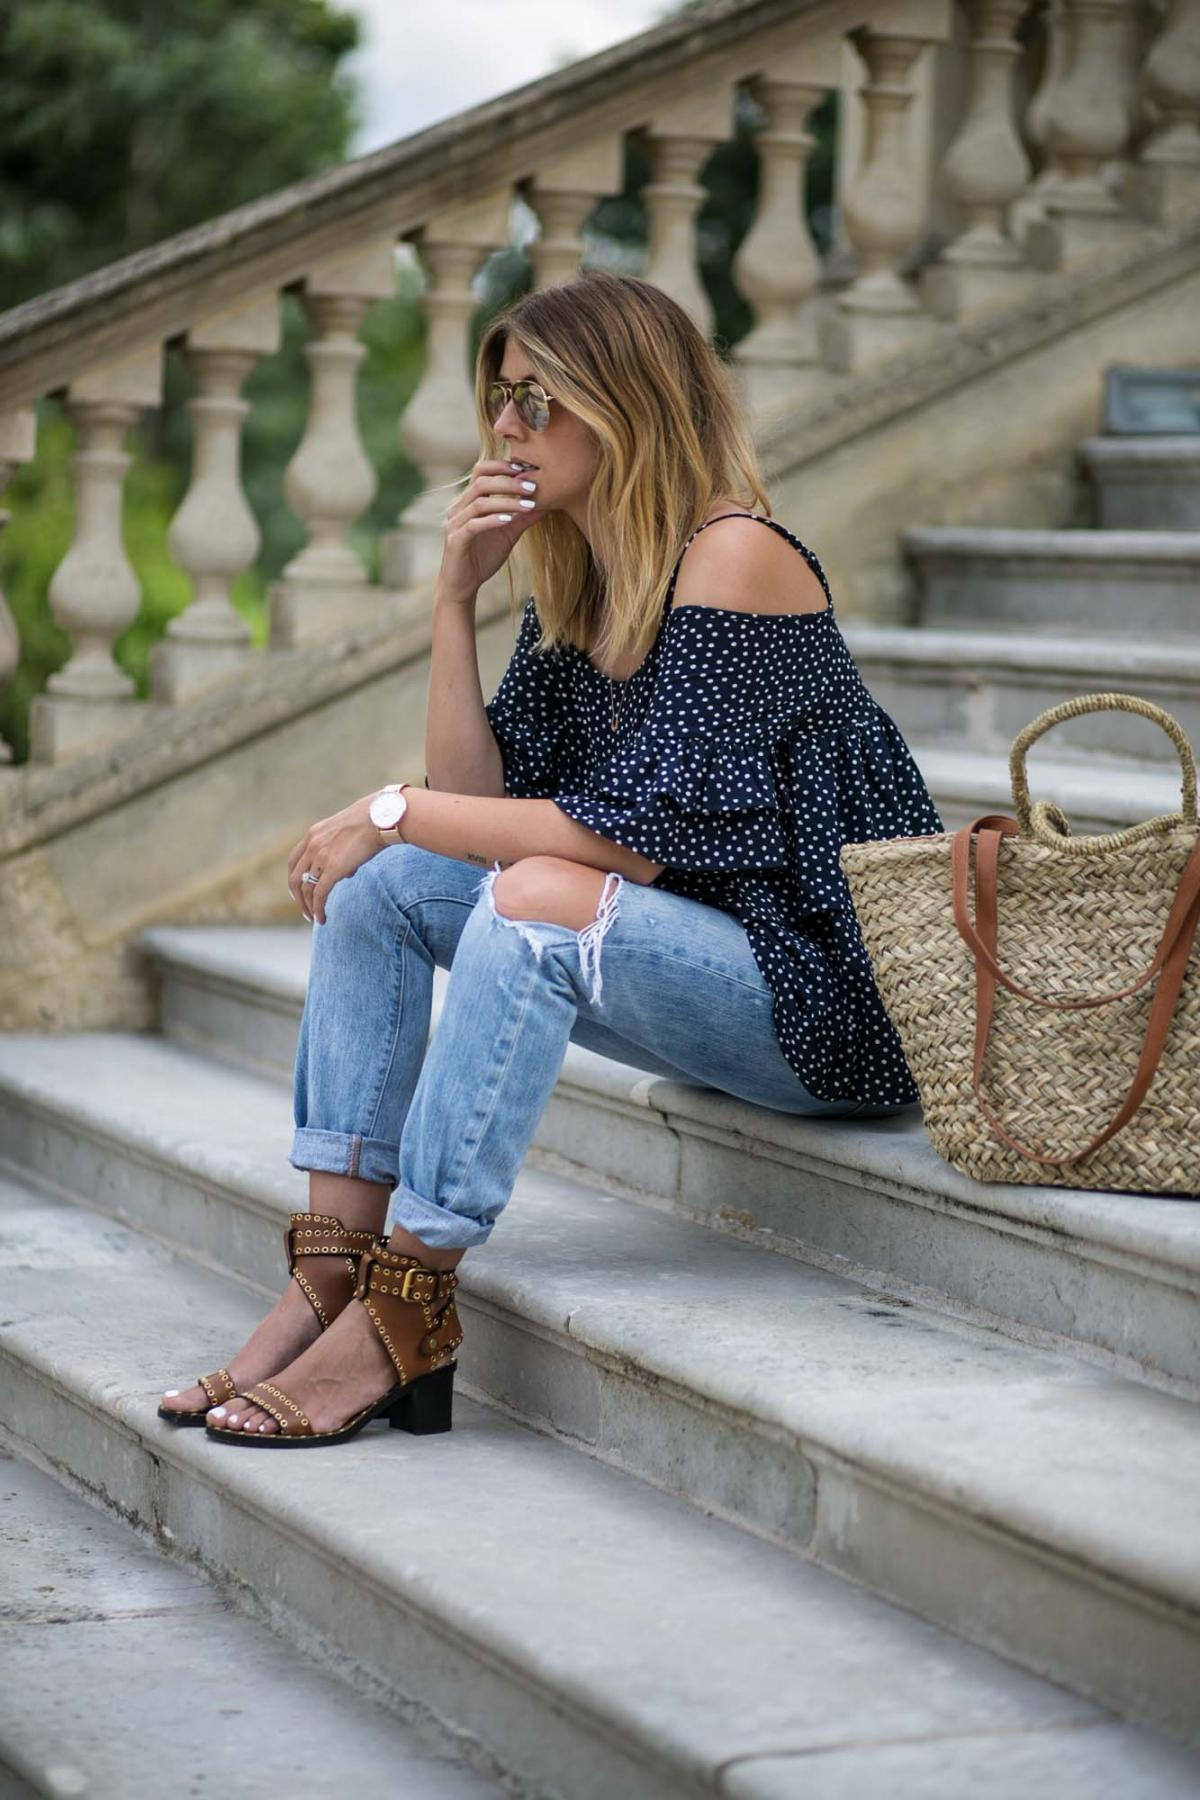 navy polka dot top, boyfriend jeans, levis, straw wicker beach bag, Isabel Marant tan sandals, summer outfit